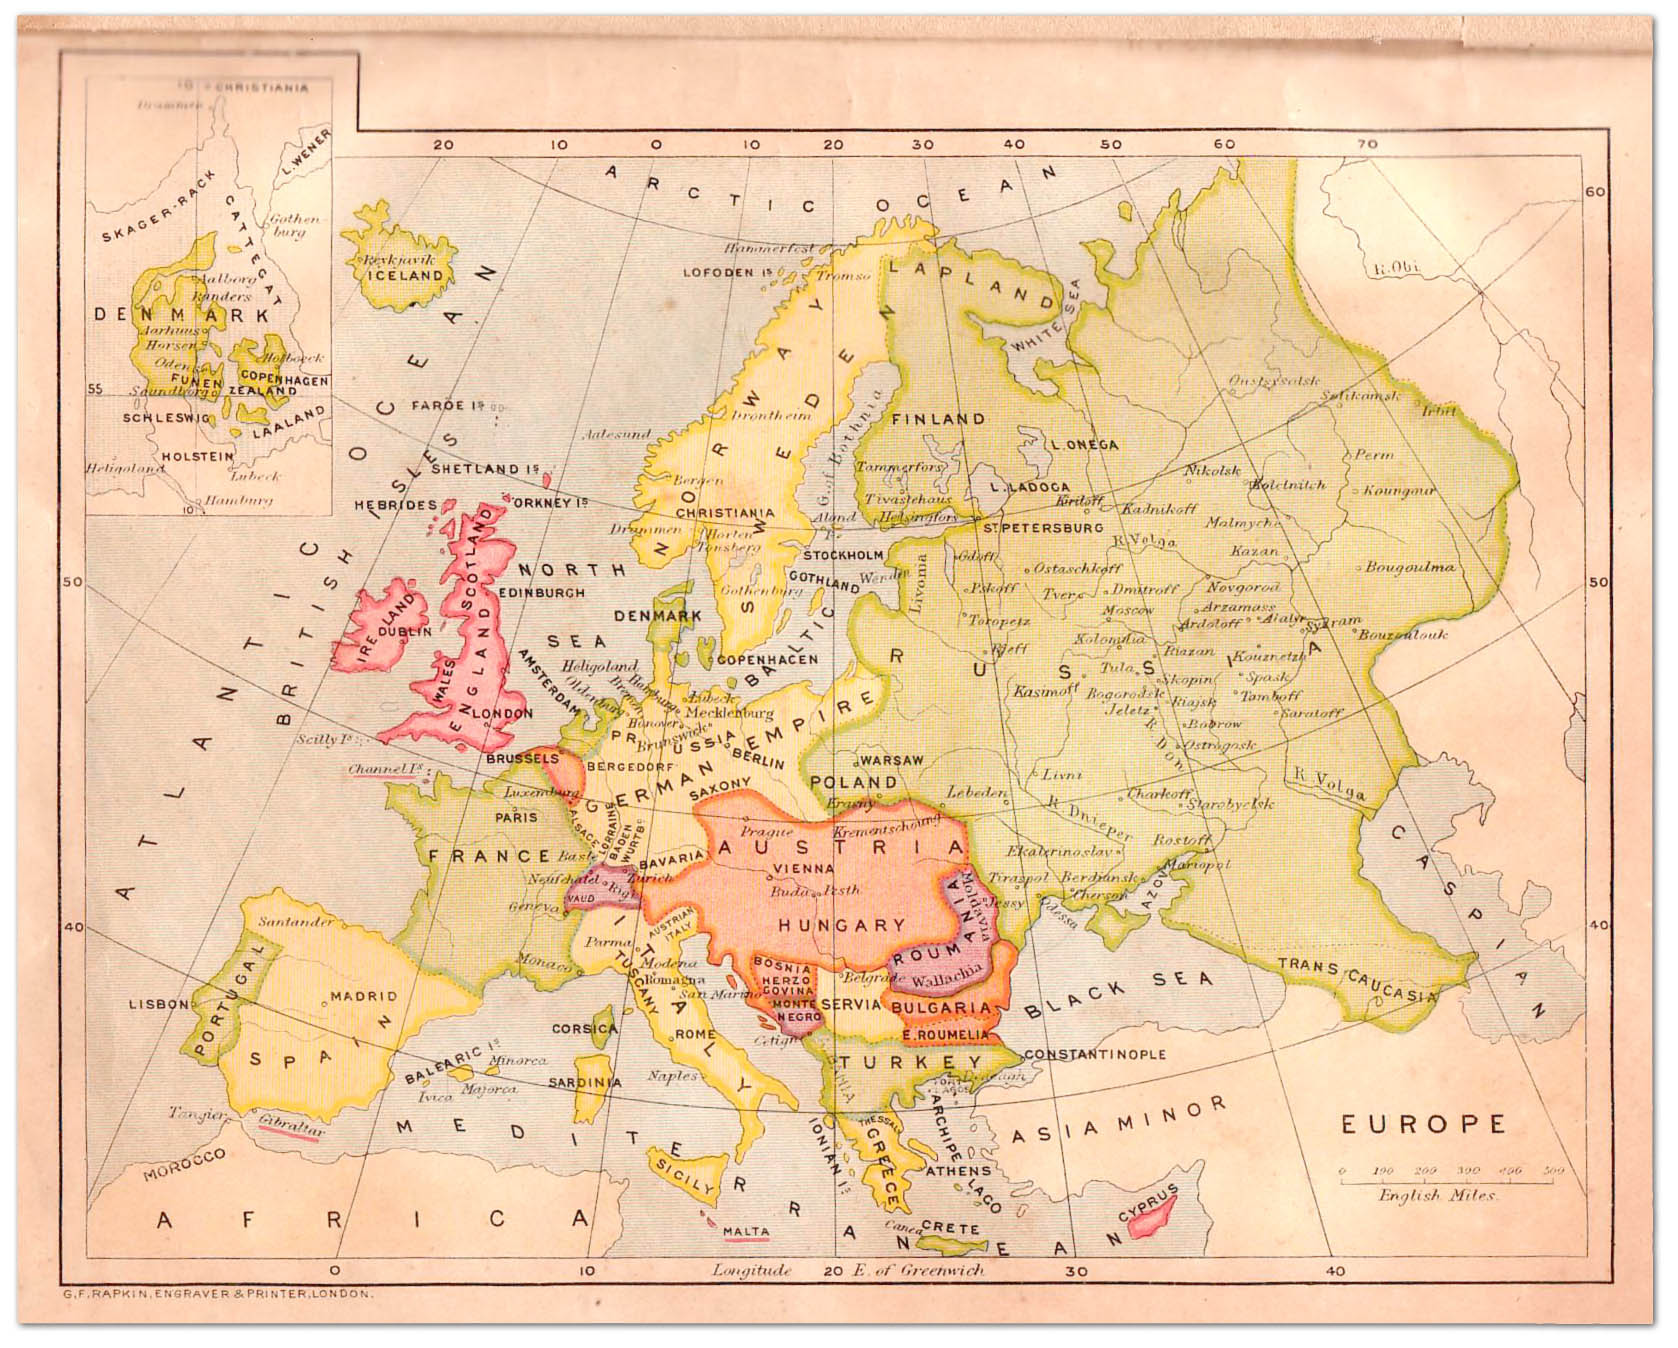 map of austria hungary 1900 1907 with 1908 In Europe on The Austro Hungarian Empire In 1897 besides India Maps as well Austria Hungary Antique Map 1907 Dodd moreover File Yuzhakov Big Encyclopedia Map of Austria Hungary additionally Literacy Rate In Austria Hungary 1880.